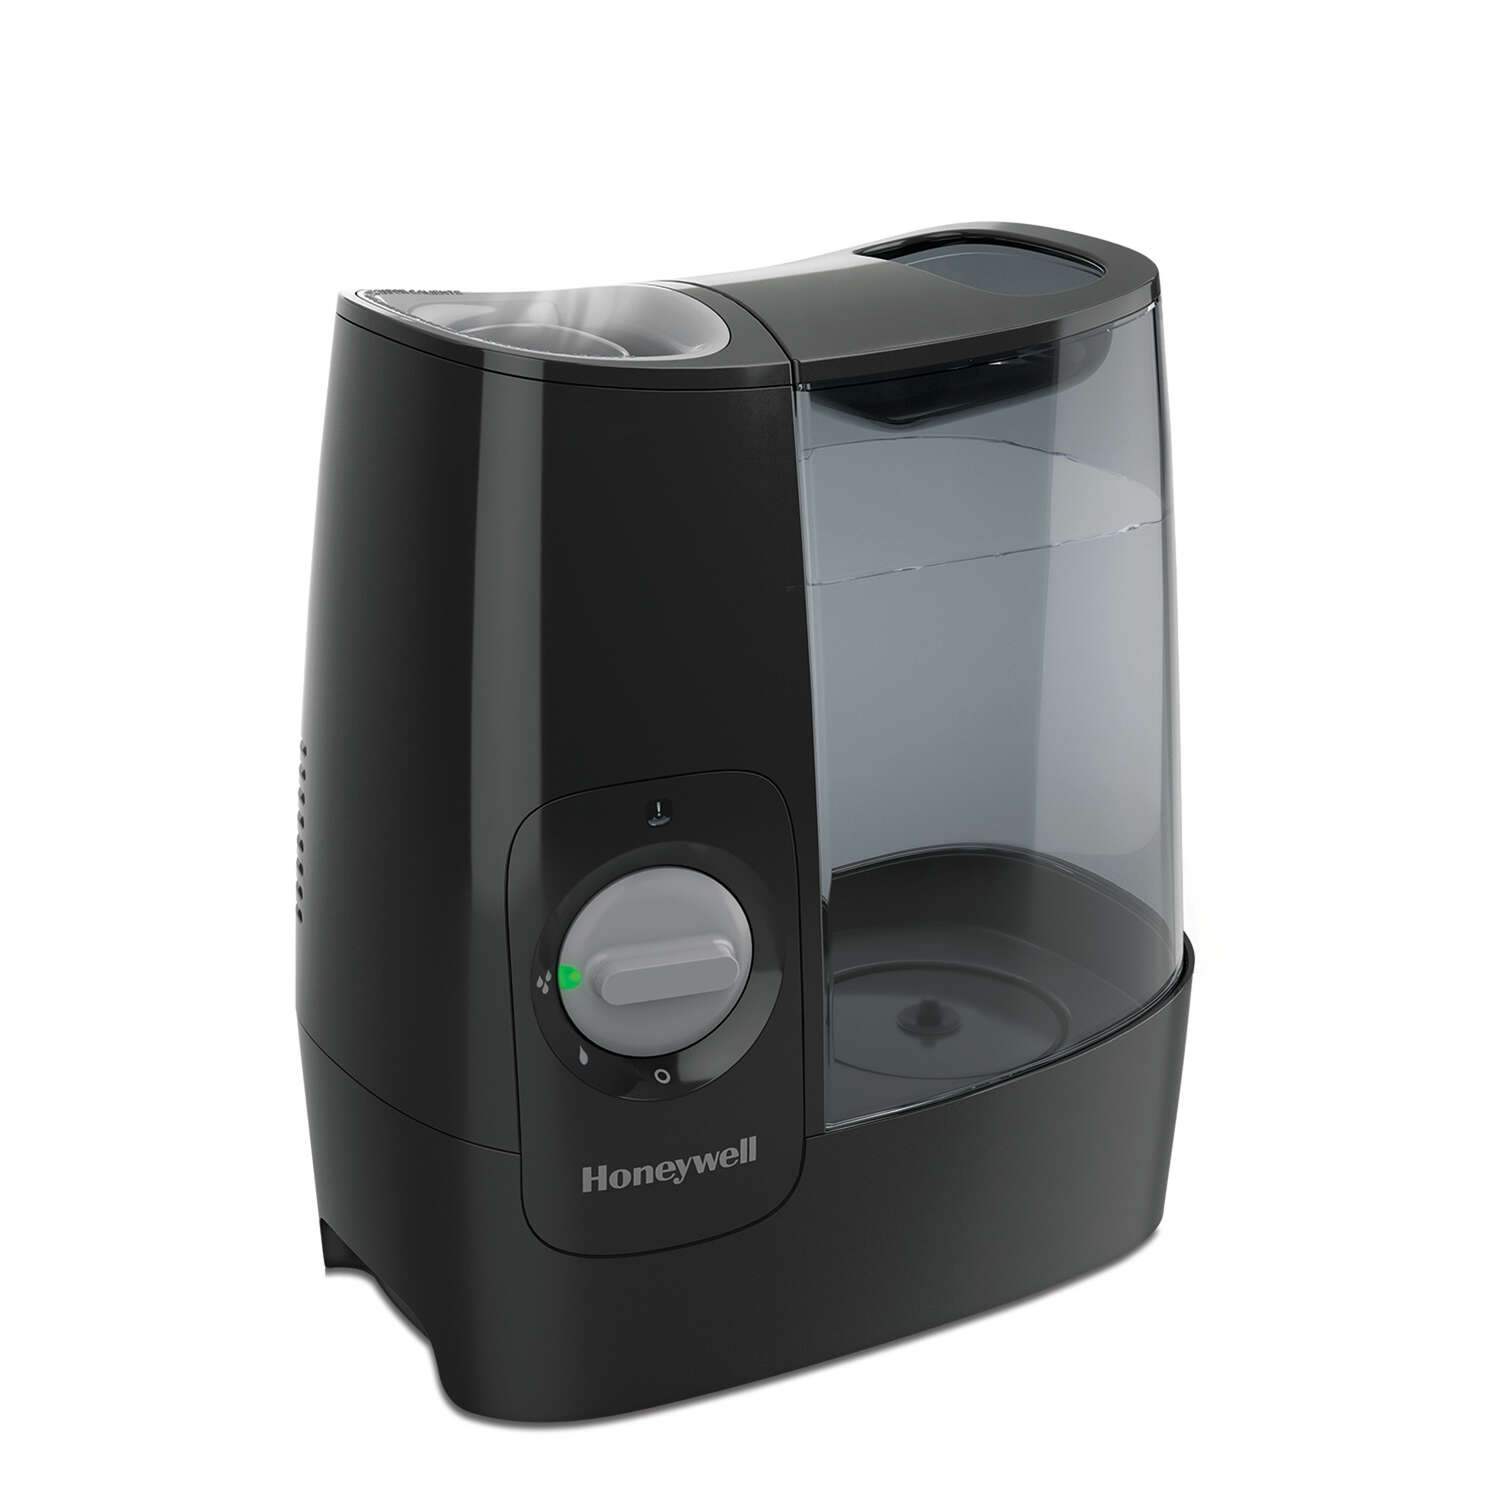 Honeywell  1 gal. 70 sq. ft. Manual  Filter Free Humidifier